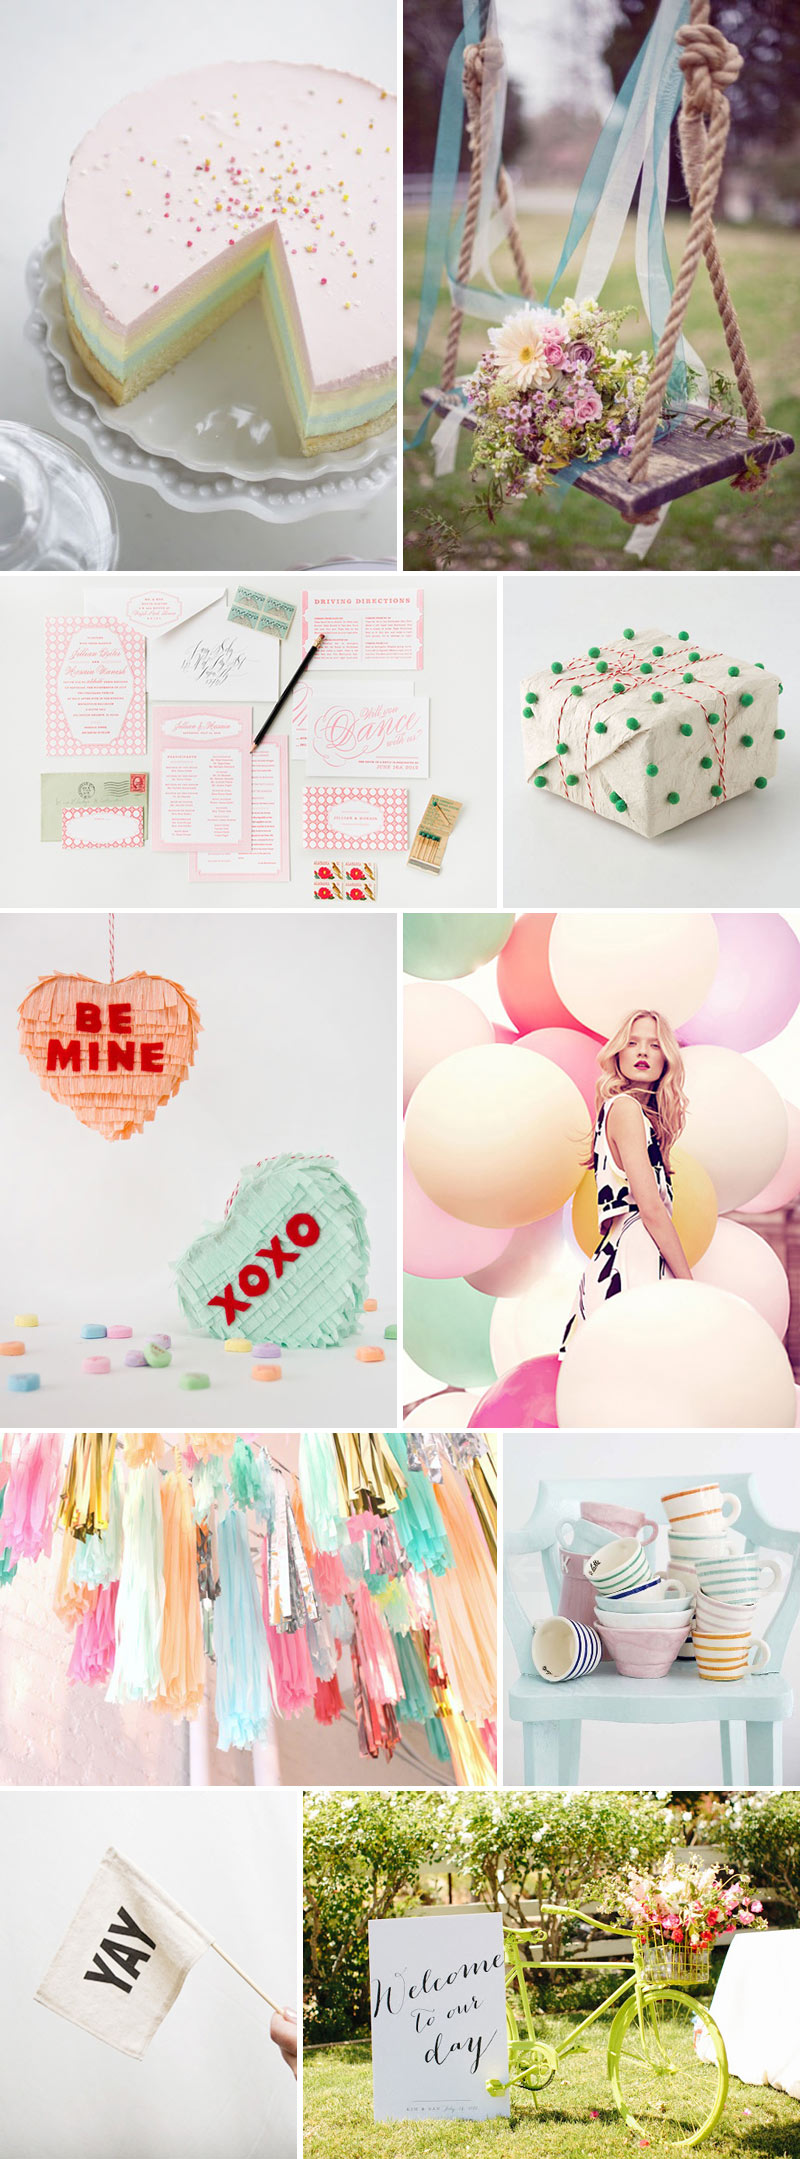 Delicious Decor Wedding Spring Inspiration